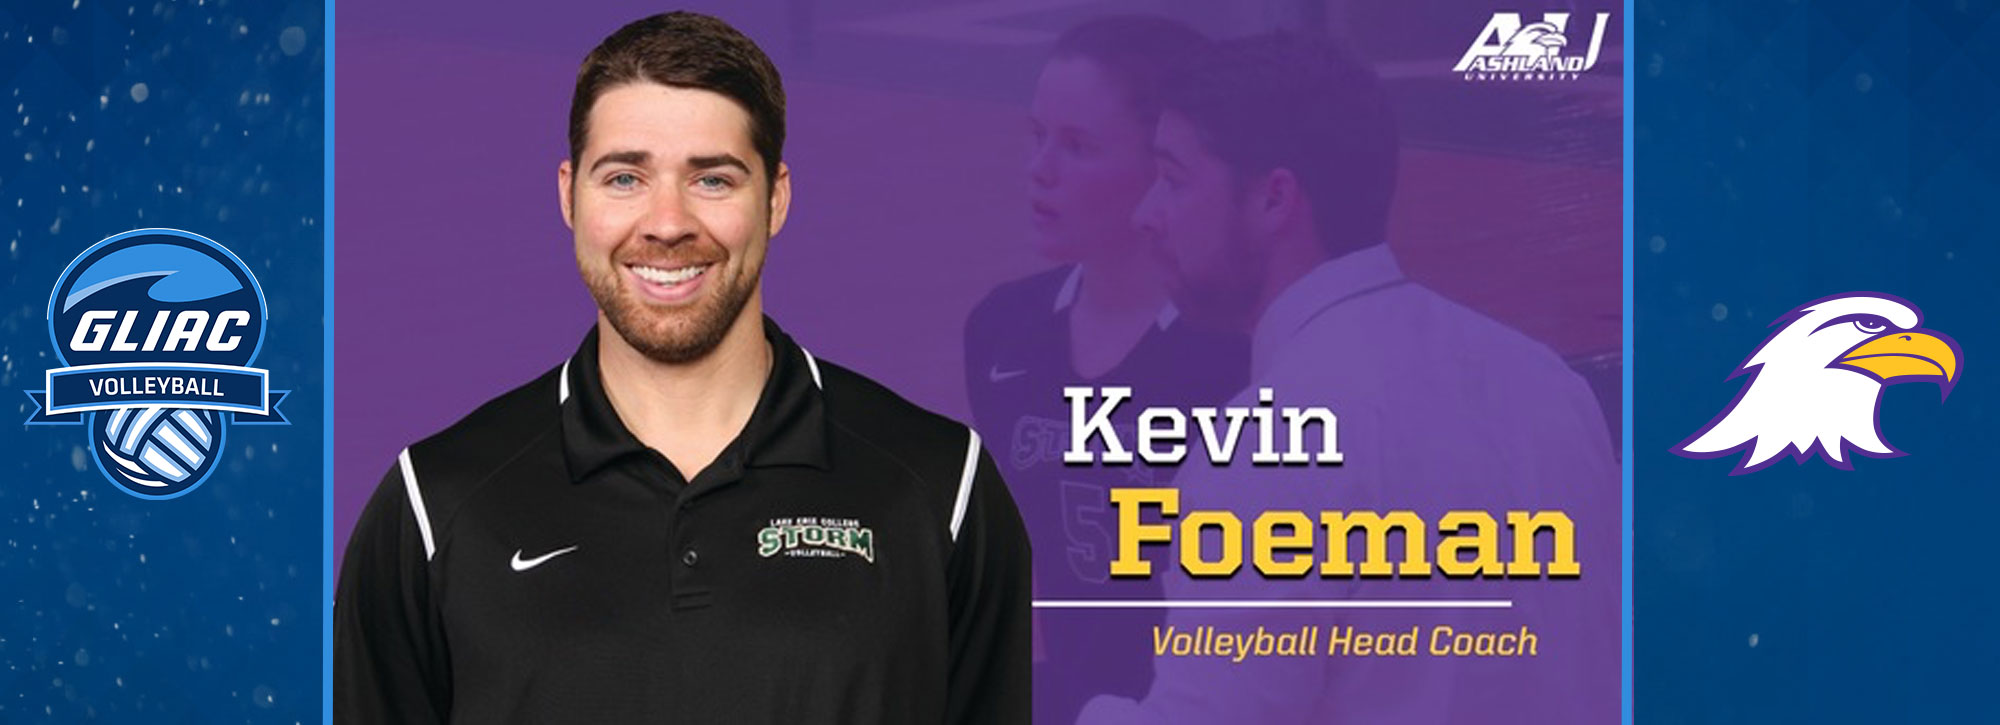 Ashland Names Foeman Next Volleyball Head Coach